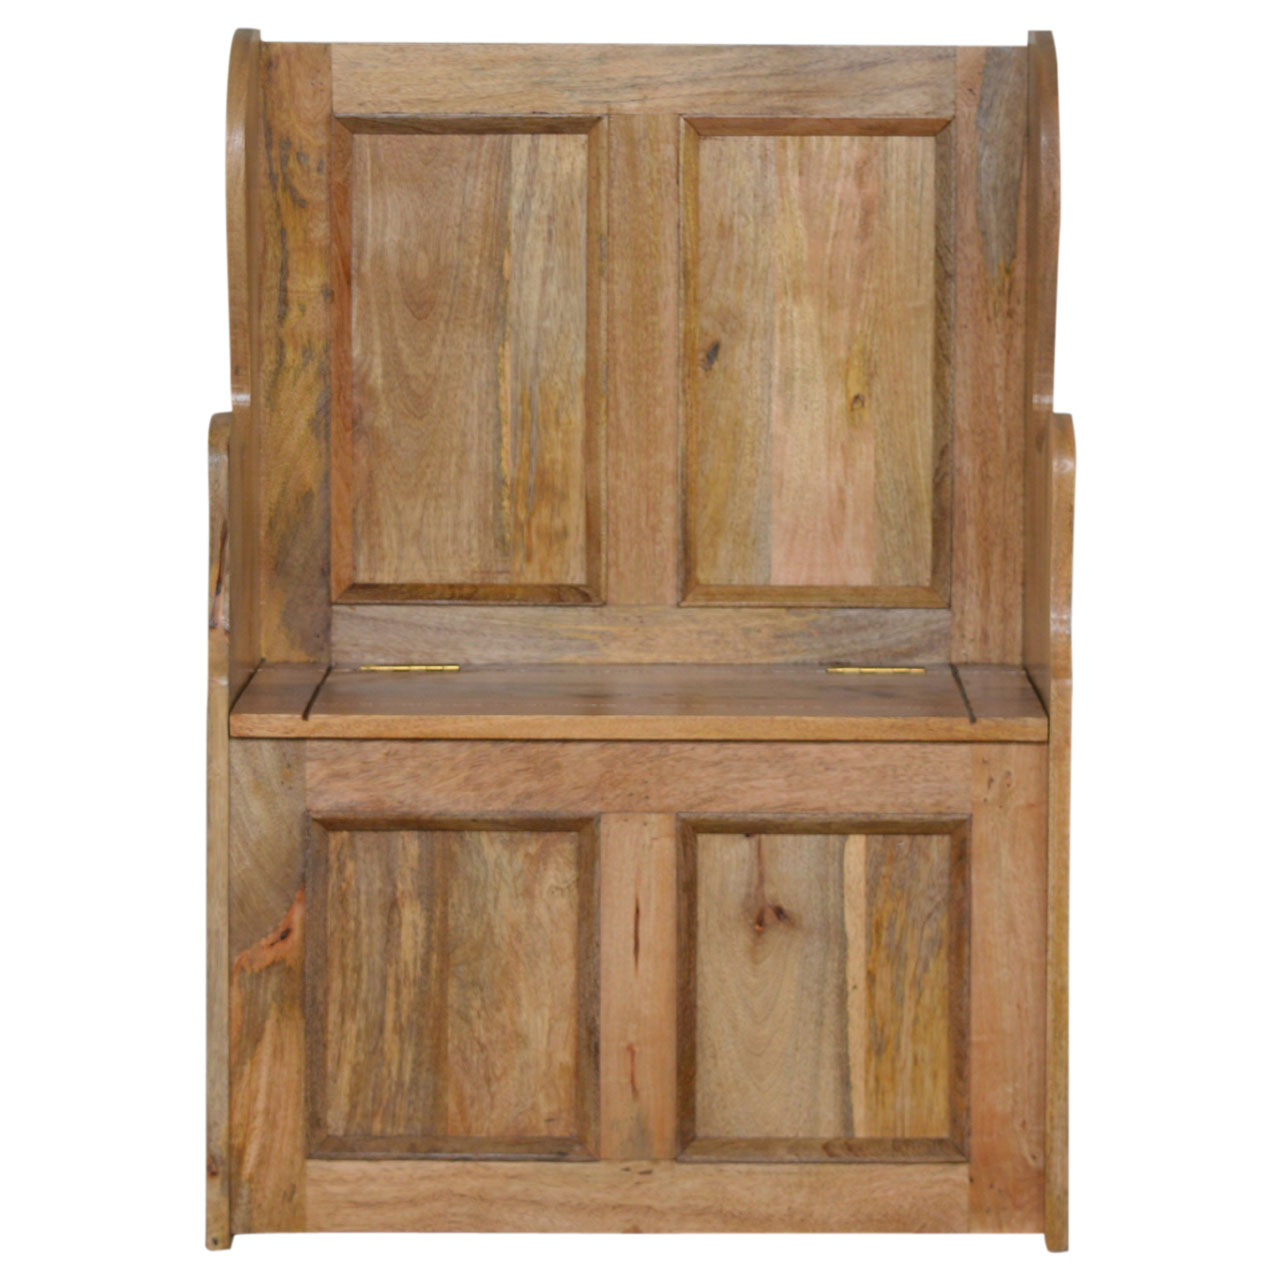 IN073 Small Wood Storage Hallway Monks Bench